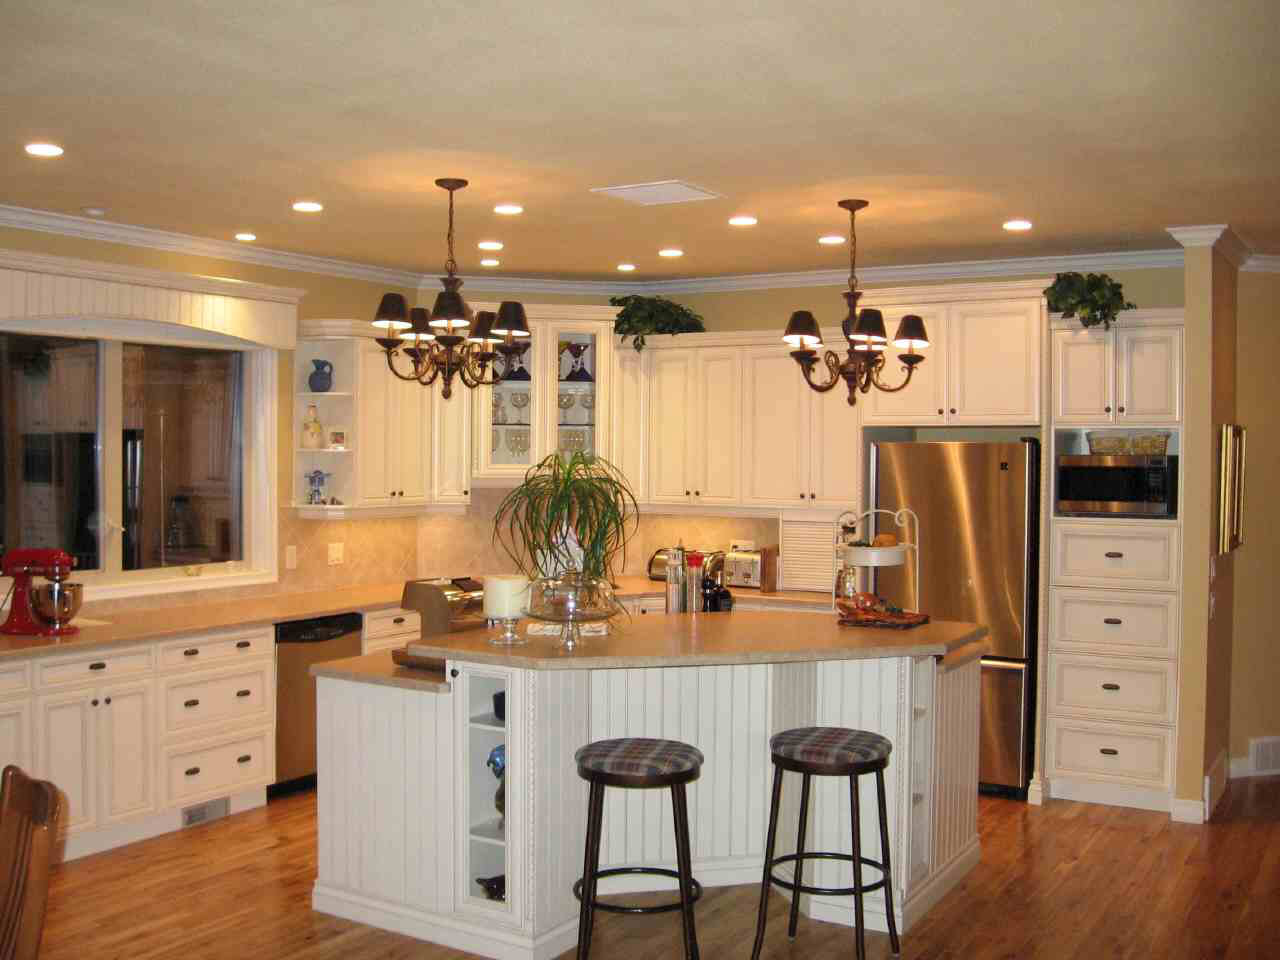 Interior kitchen design ideas home ideas decoration for Kitchen interior design pictures